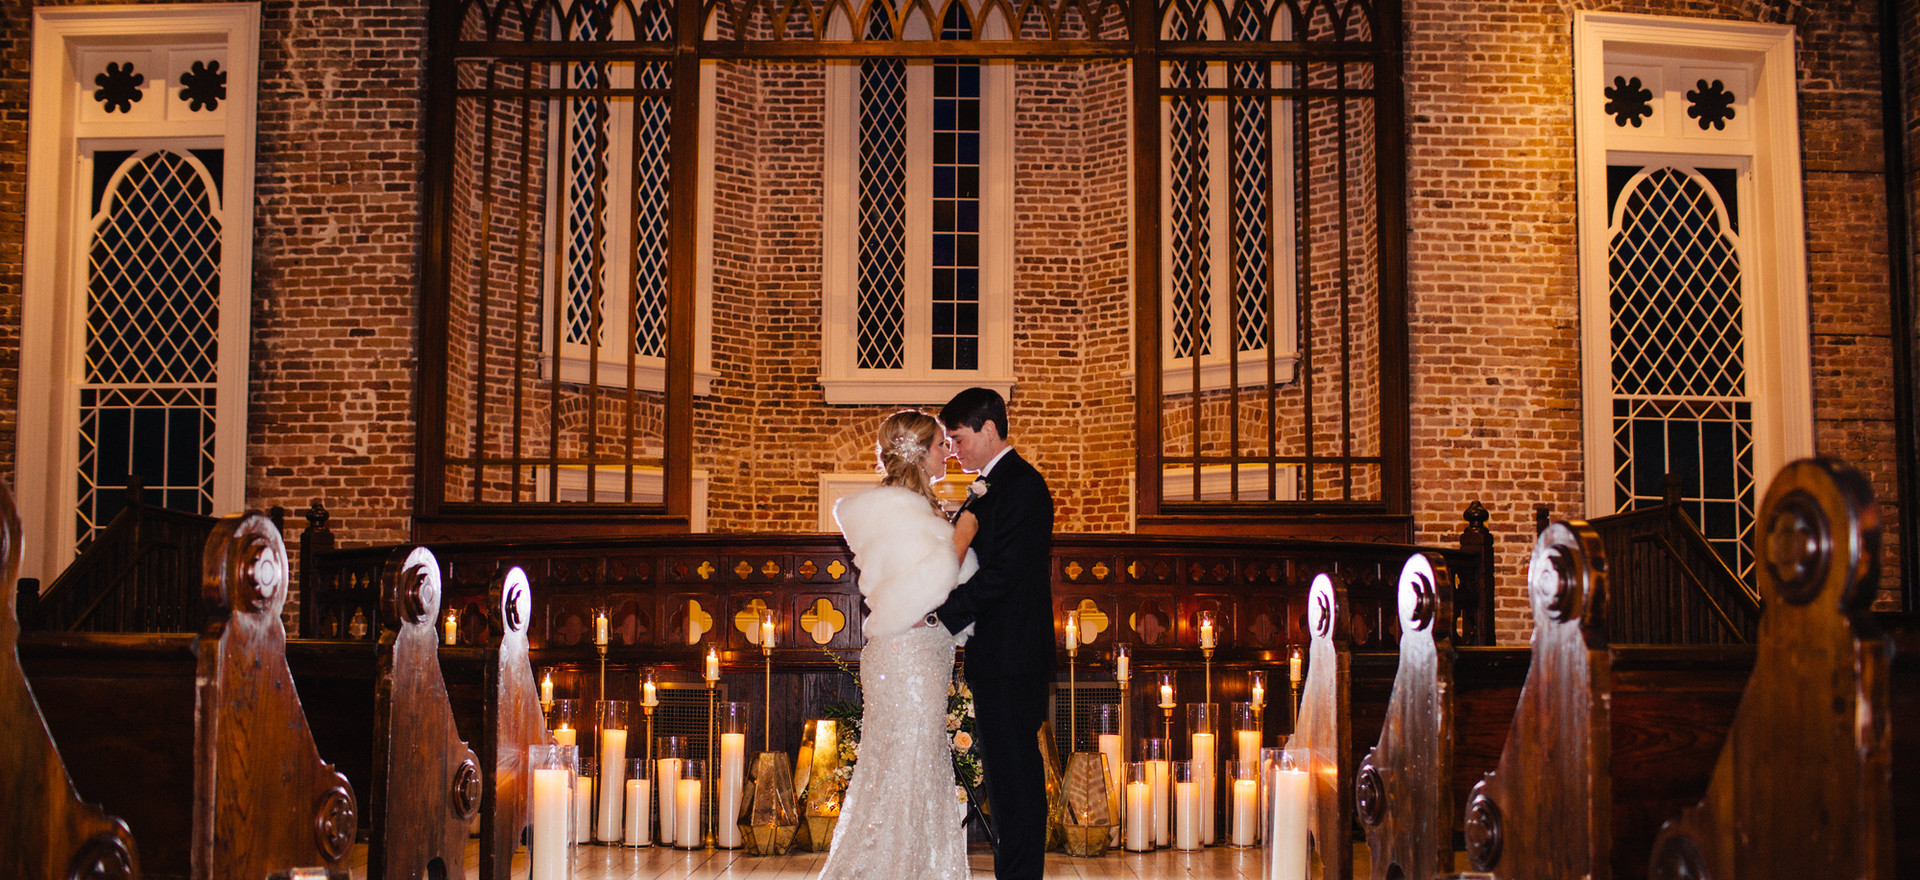 Ceremony Setting with Geometric Lanters and Pillar Candles